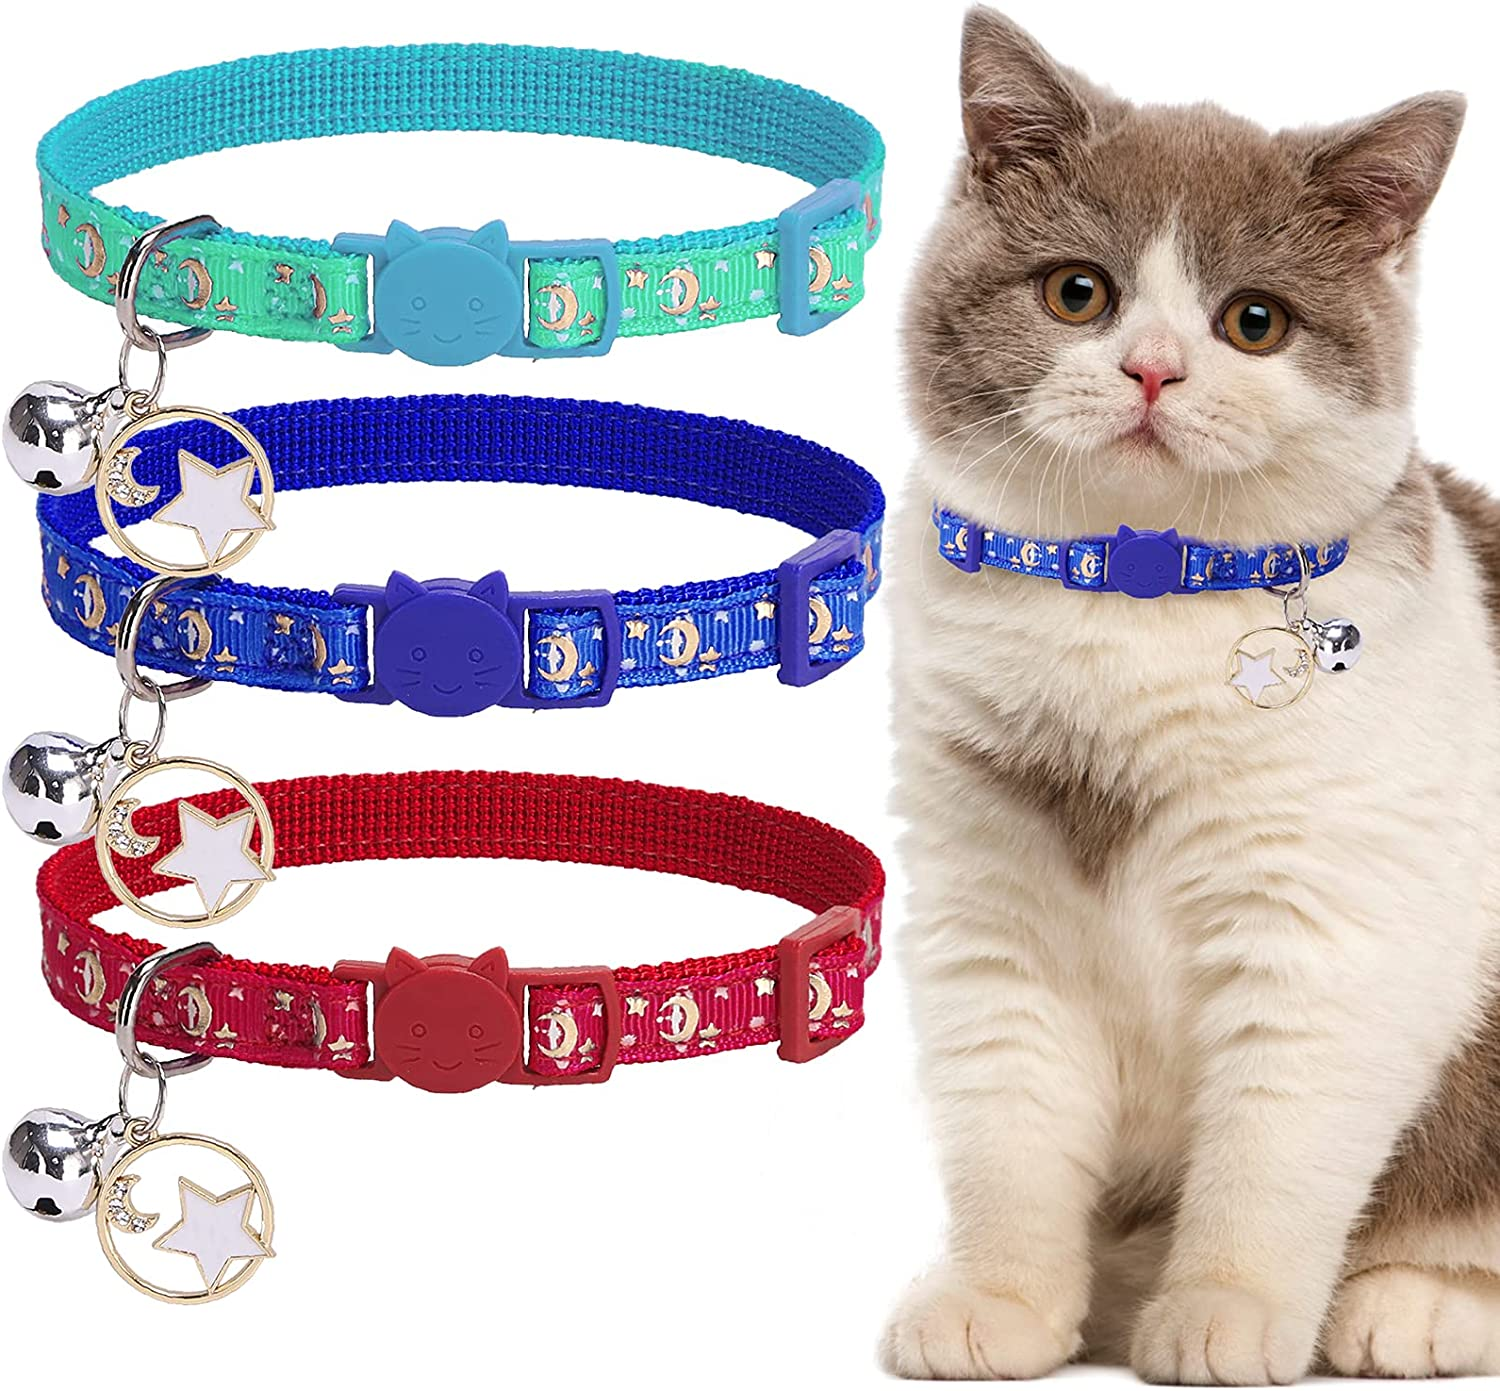 TAILGOO Same day shipping Luminous Cat Collar 3 Pack for Adjustable Pets Collars Easy-to-use -